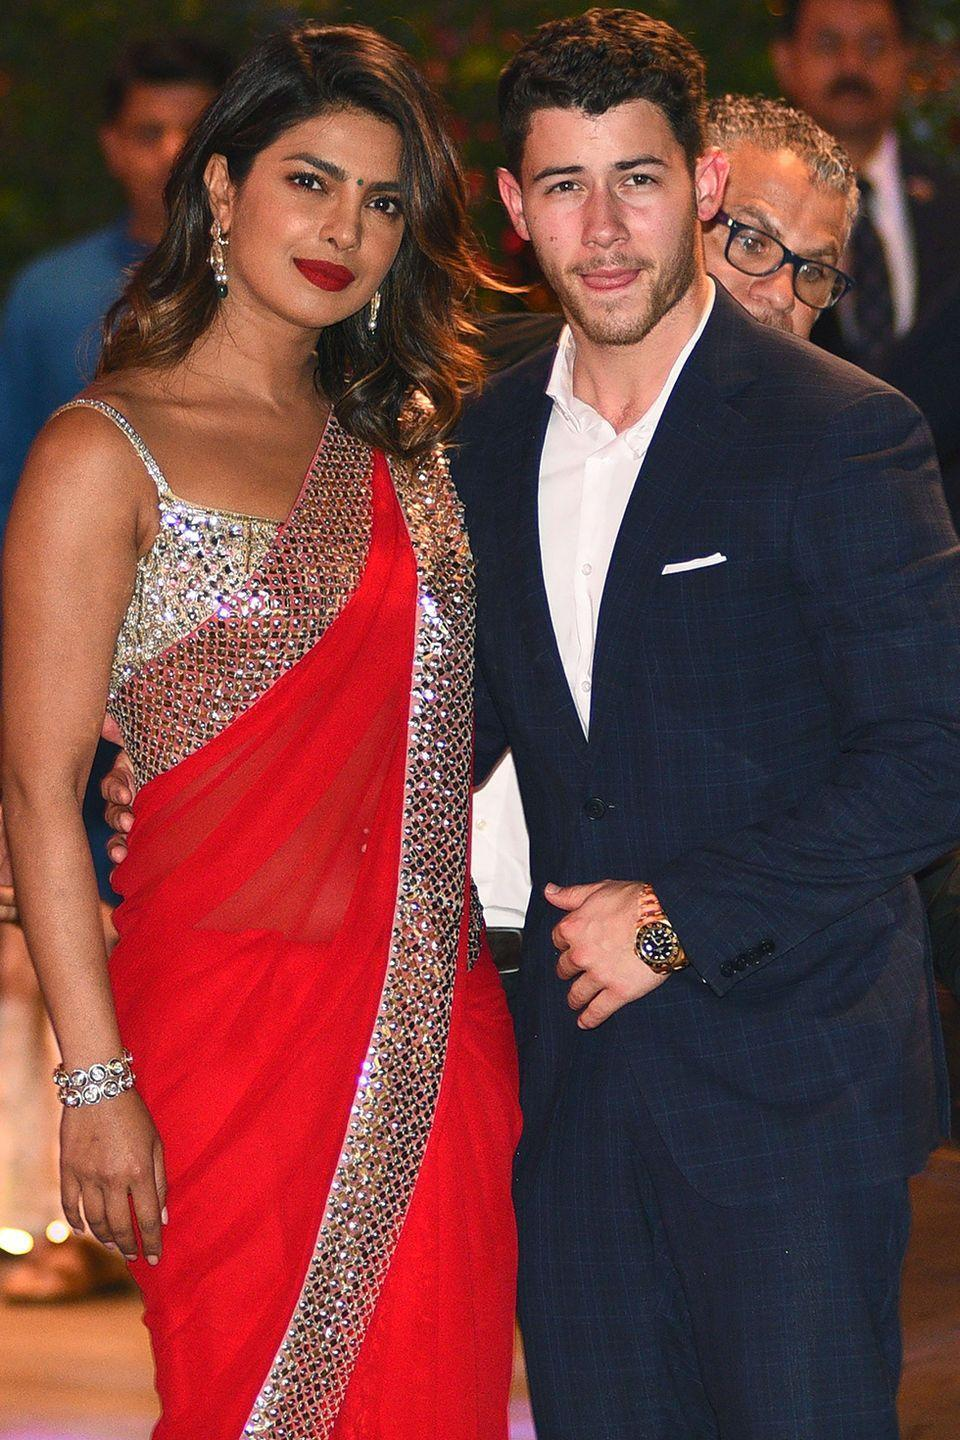 "<p>We were just getting used to the idea of this duo dating when they got engaged just two months later on her 36th birthday in London, according to <a class=""link rapid-noclick-resp"" href=""https://www.etonline.com/priyanka-chopra-flashes-engagement-ring-from-nick-jonas-see-the-pic-107998"" rel=""nofollow noopener"" target=""_blank"" data-ylk=""slk:ET""><em>ET</em></a>.</p>"